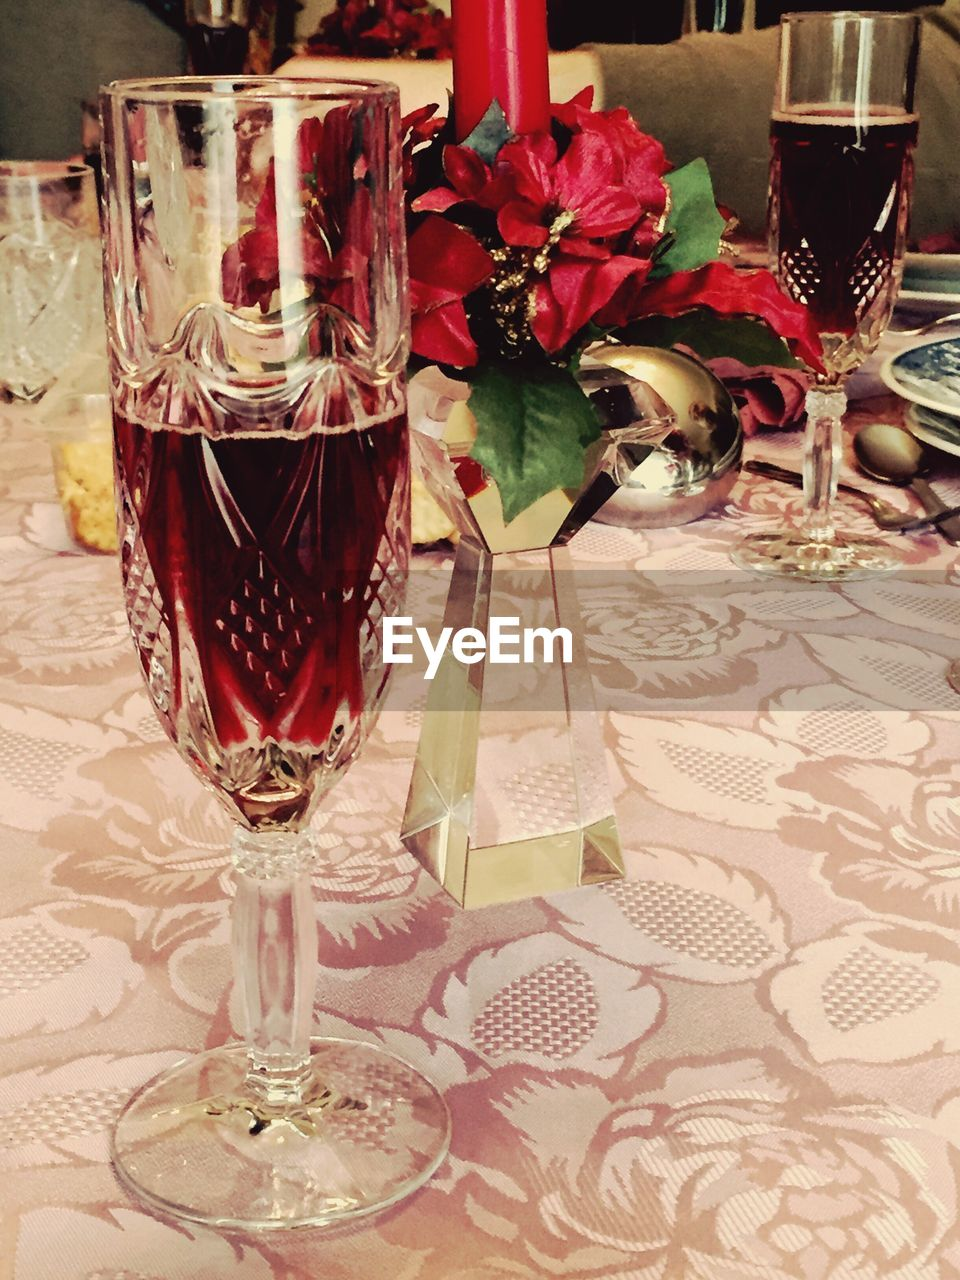 wineglass, wine, table, drink, alcohol, drinking glass, food and drink, red wine, glass, refreshment, indoors, place setting, alcoholic drink, no people, flower, beverage, vase, champagne, plate, freshness, red, close-up, food, day